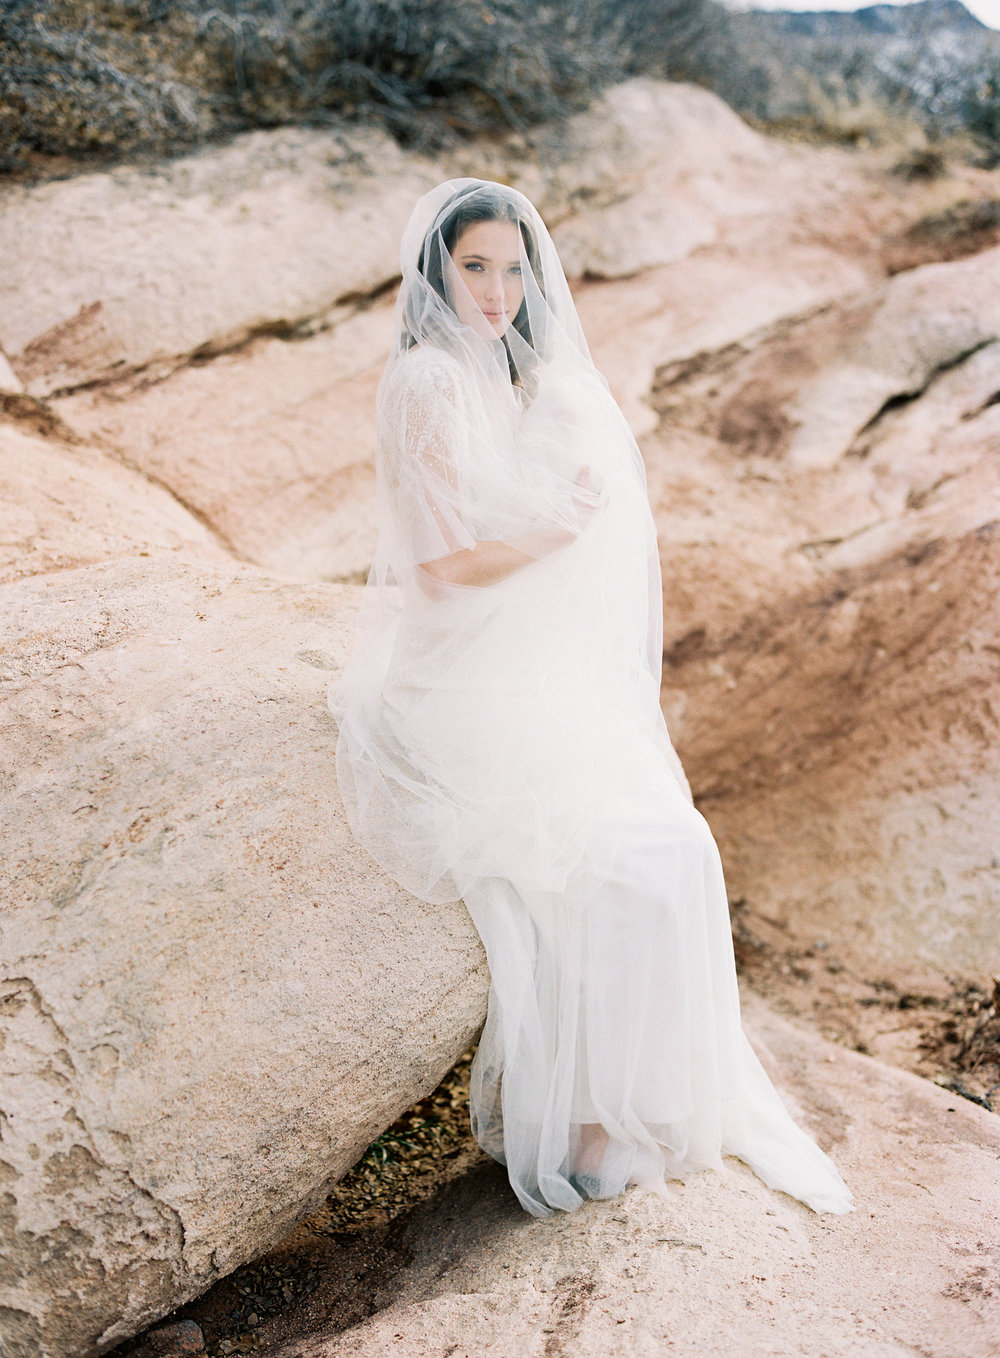 Full length veil on a bride.